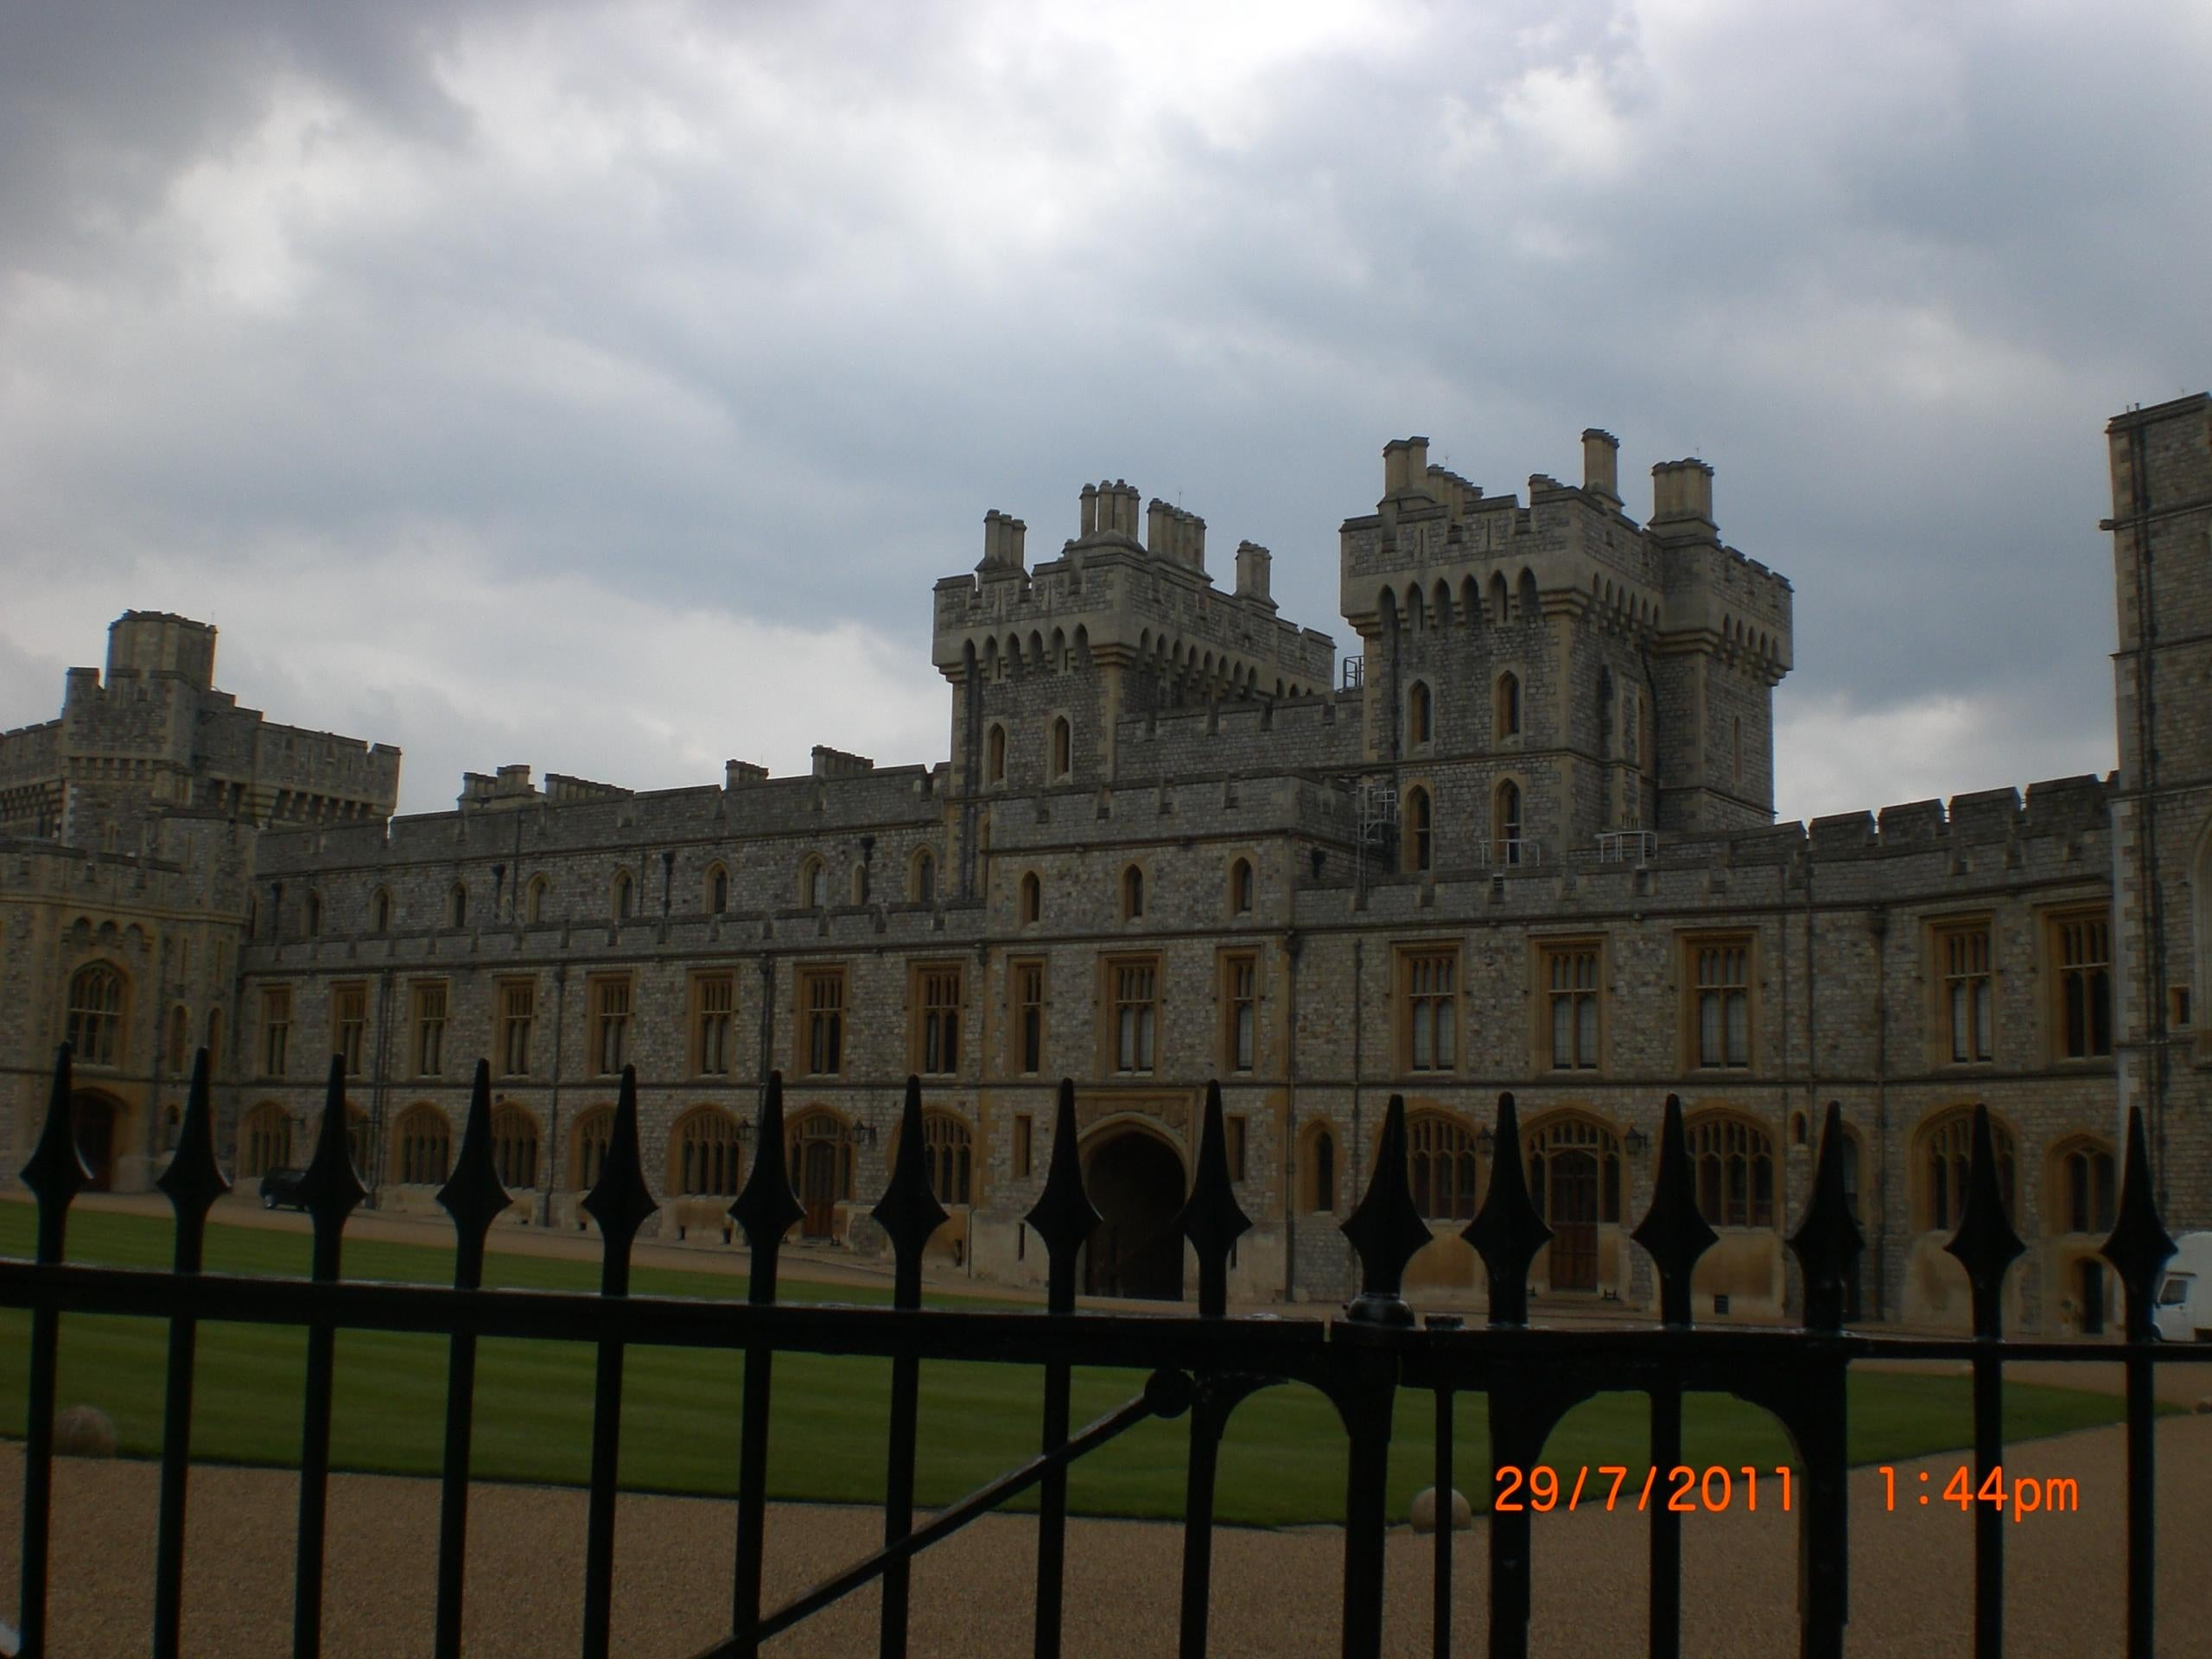 Fachada en Castillo de Windsor